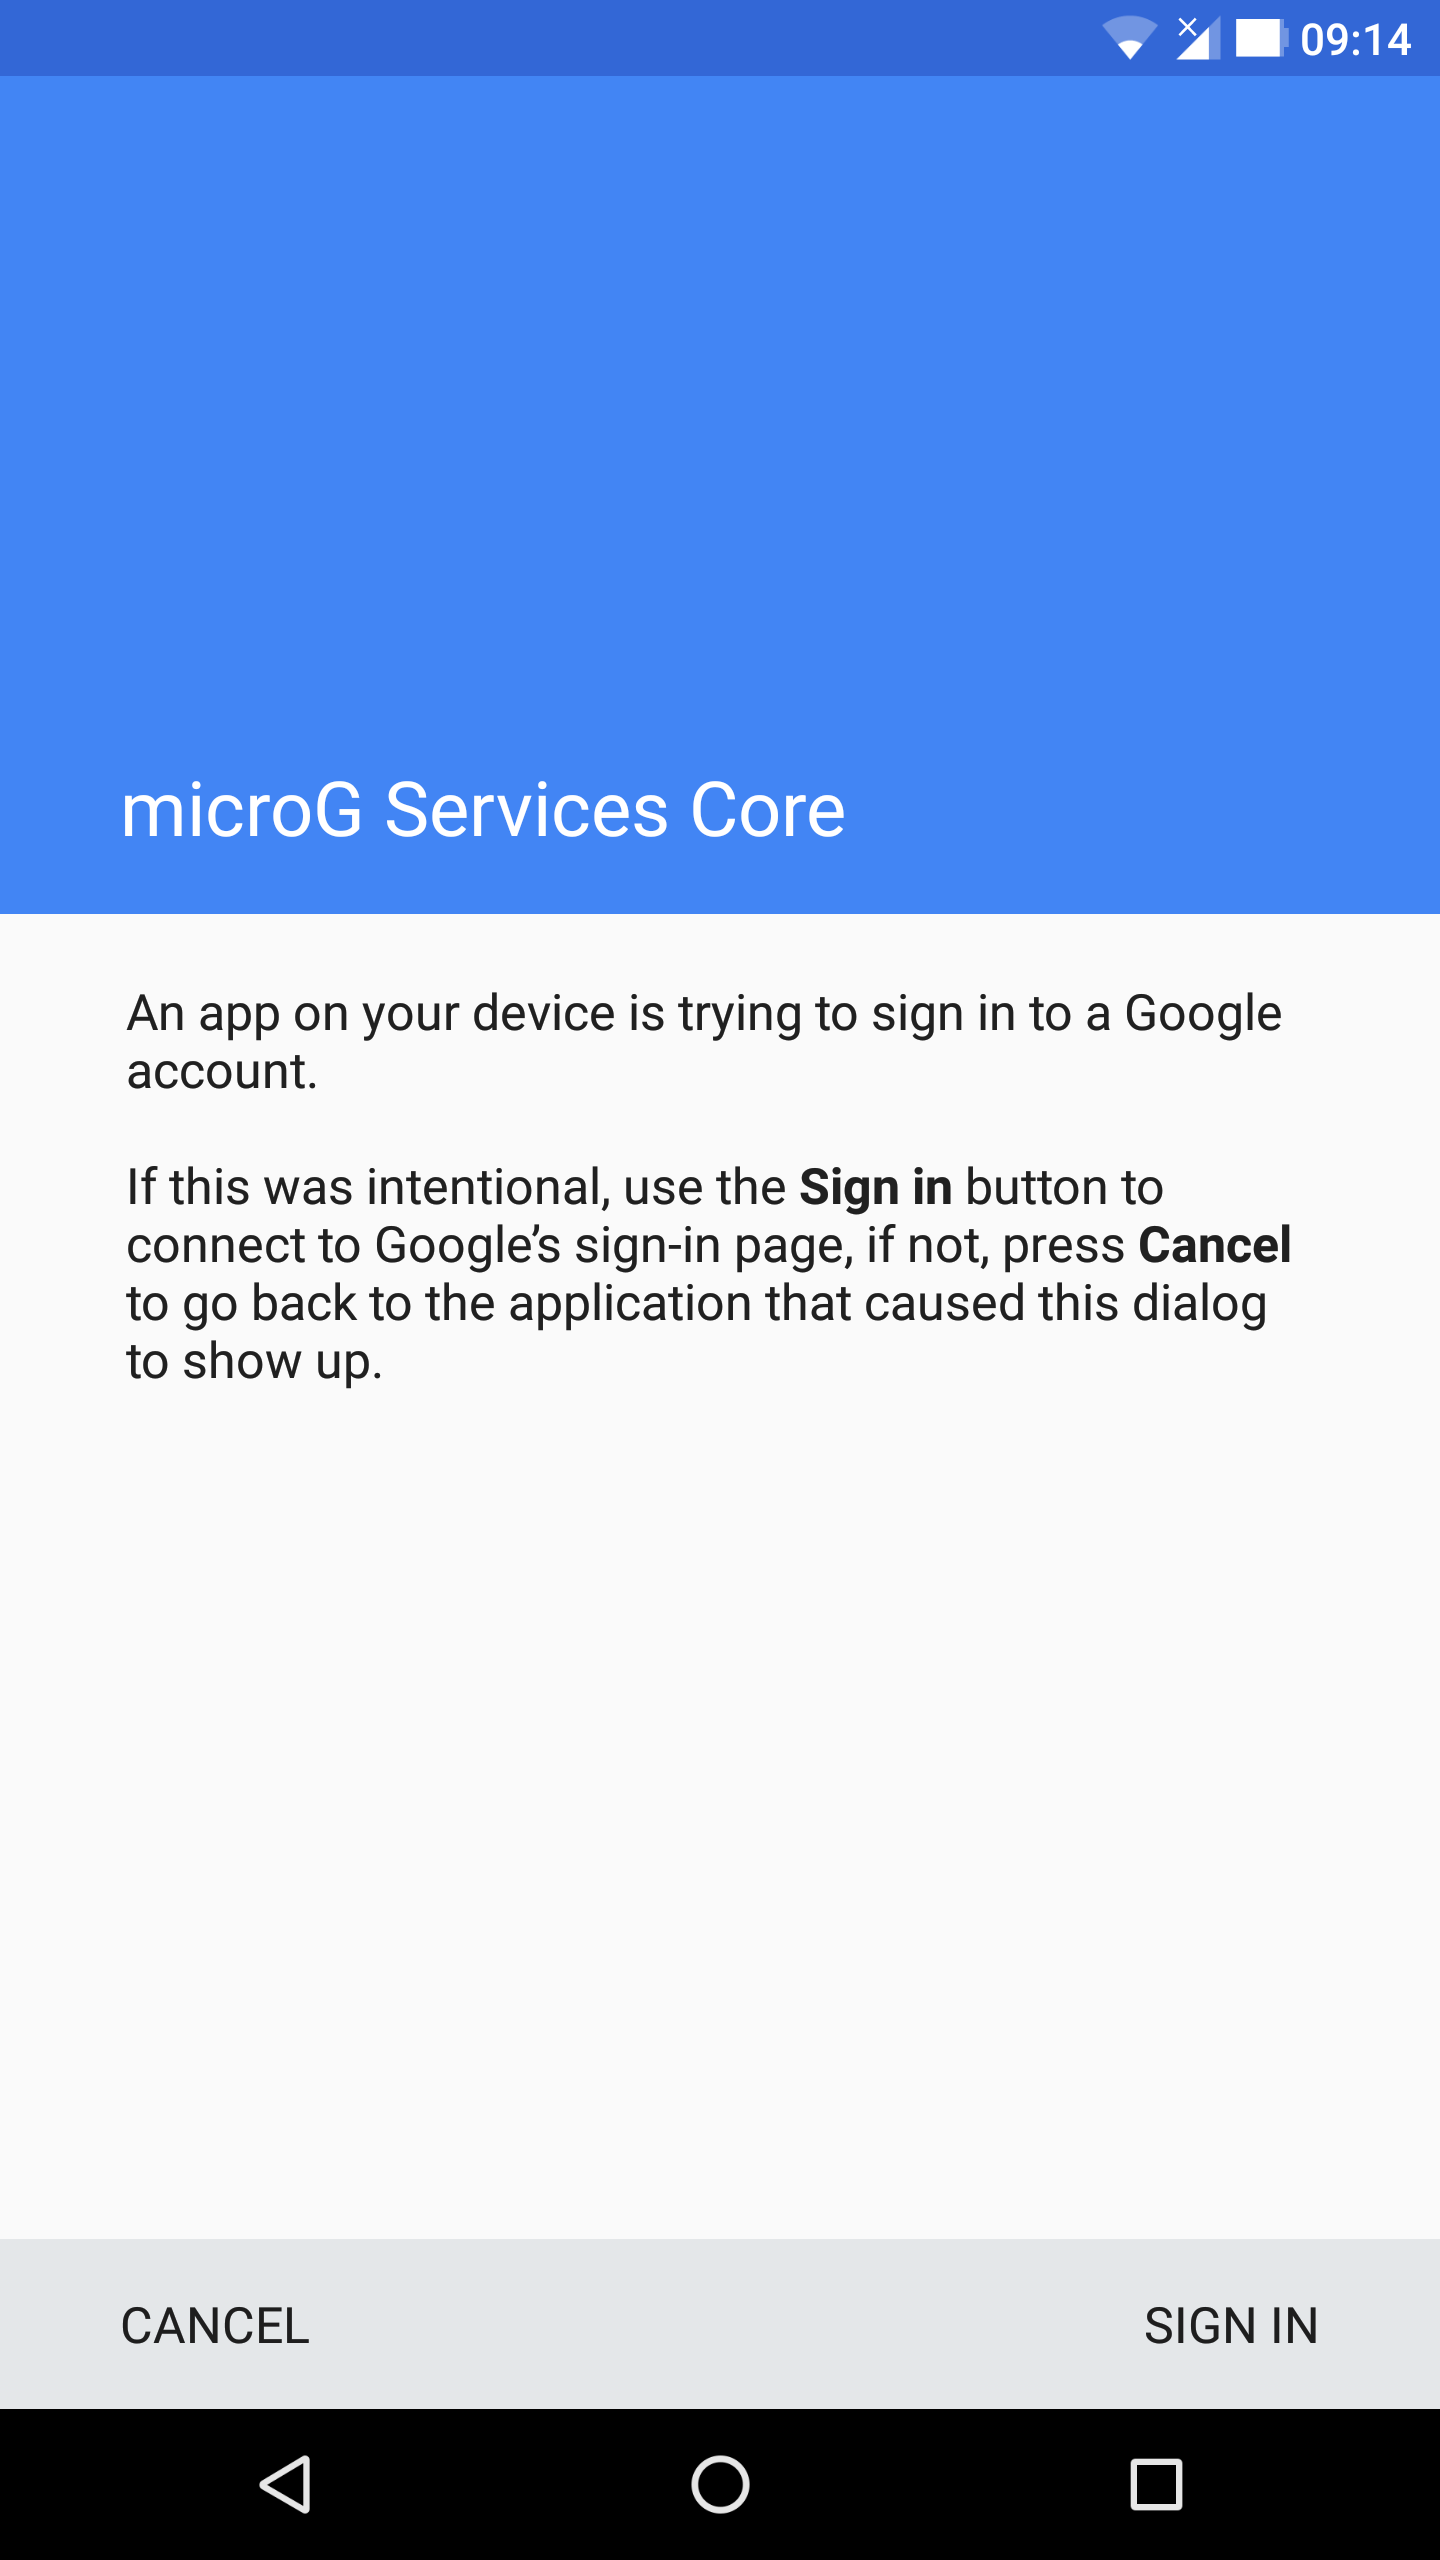 Gmail, Google Duo, Google Play Games are not logging in with microG